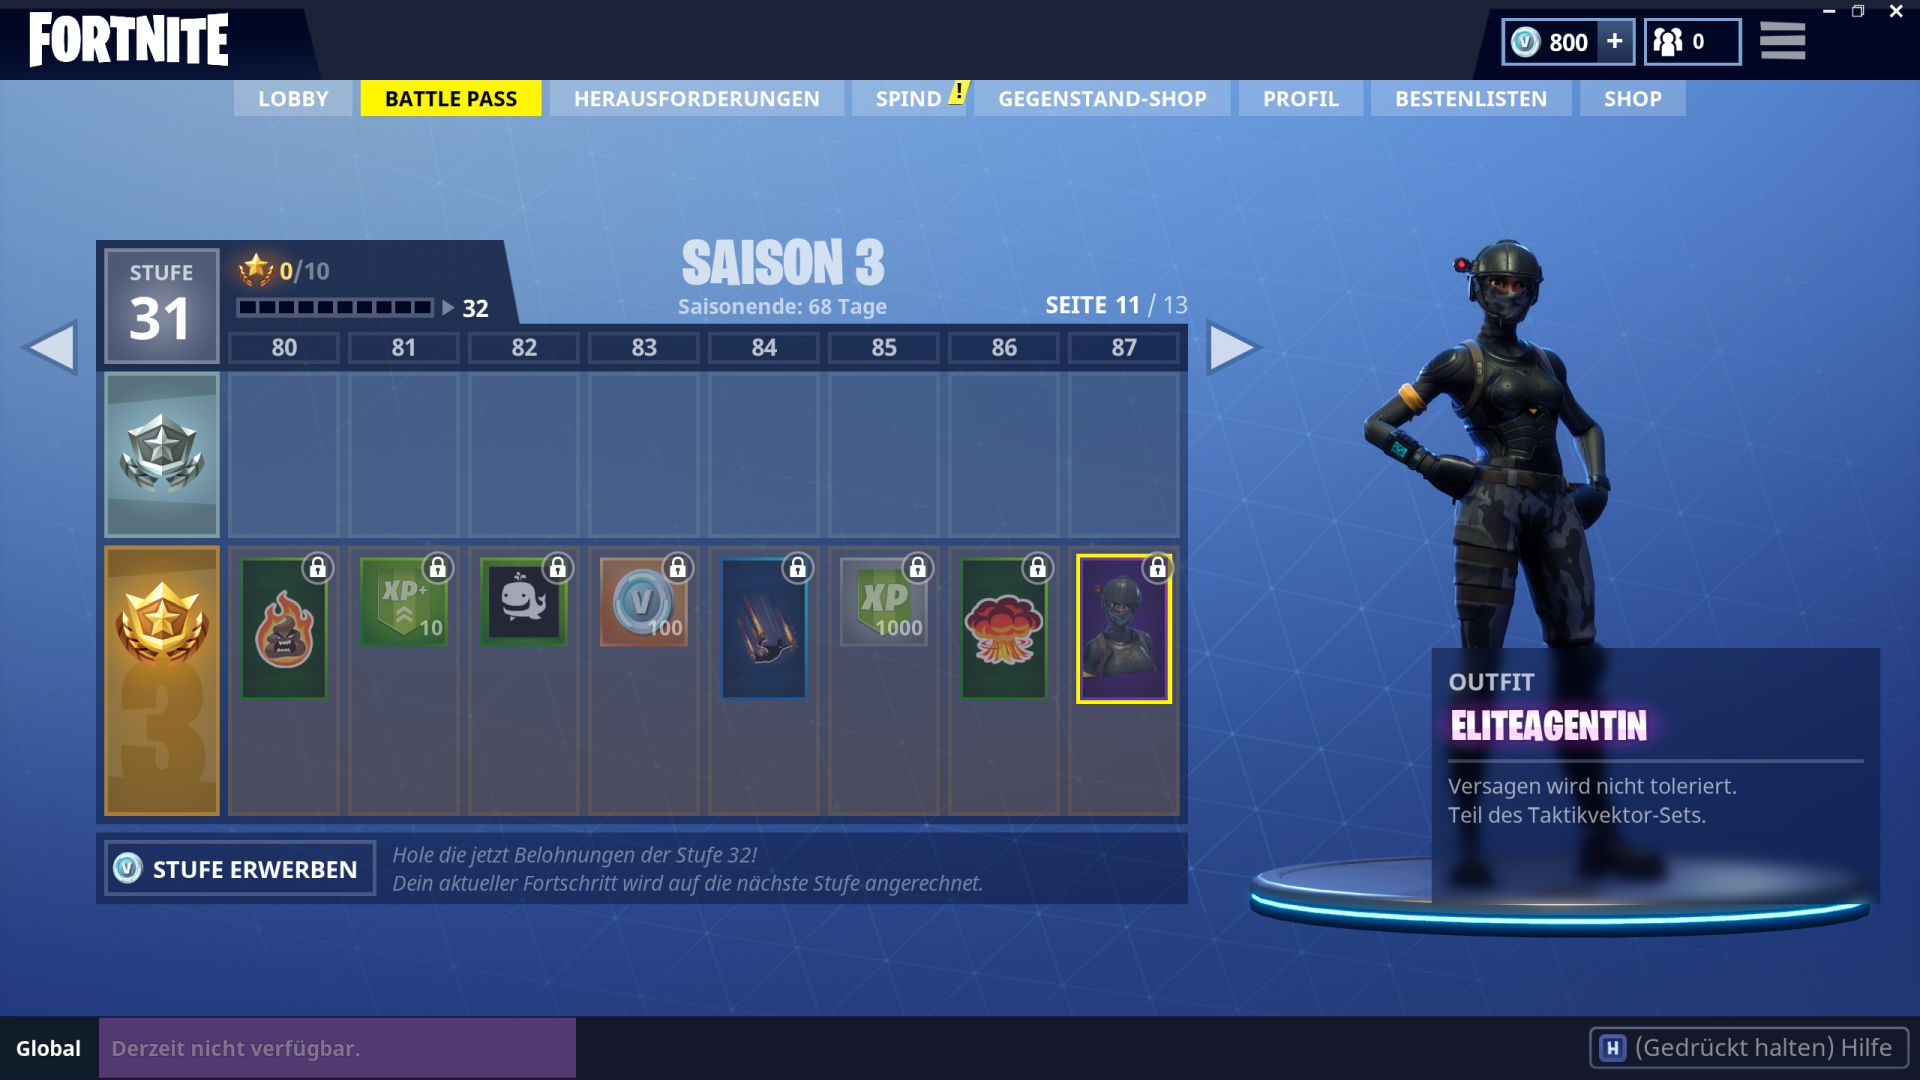 Fortnite-Battle-Pass-Season-03-Screenshots-20